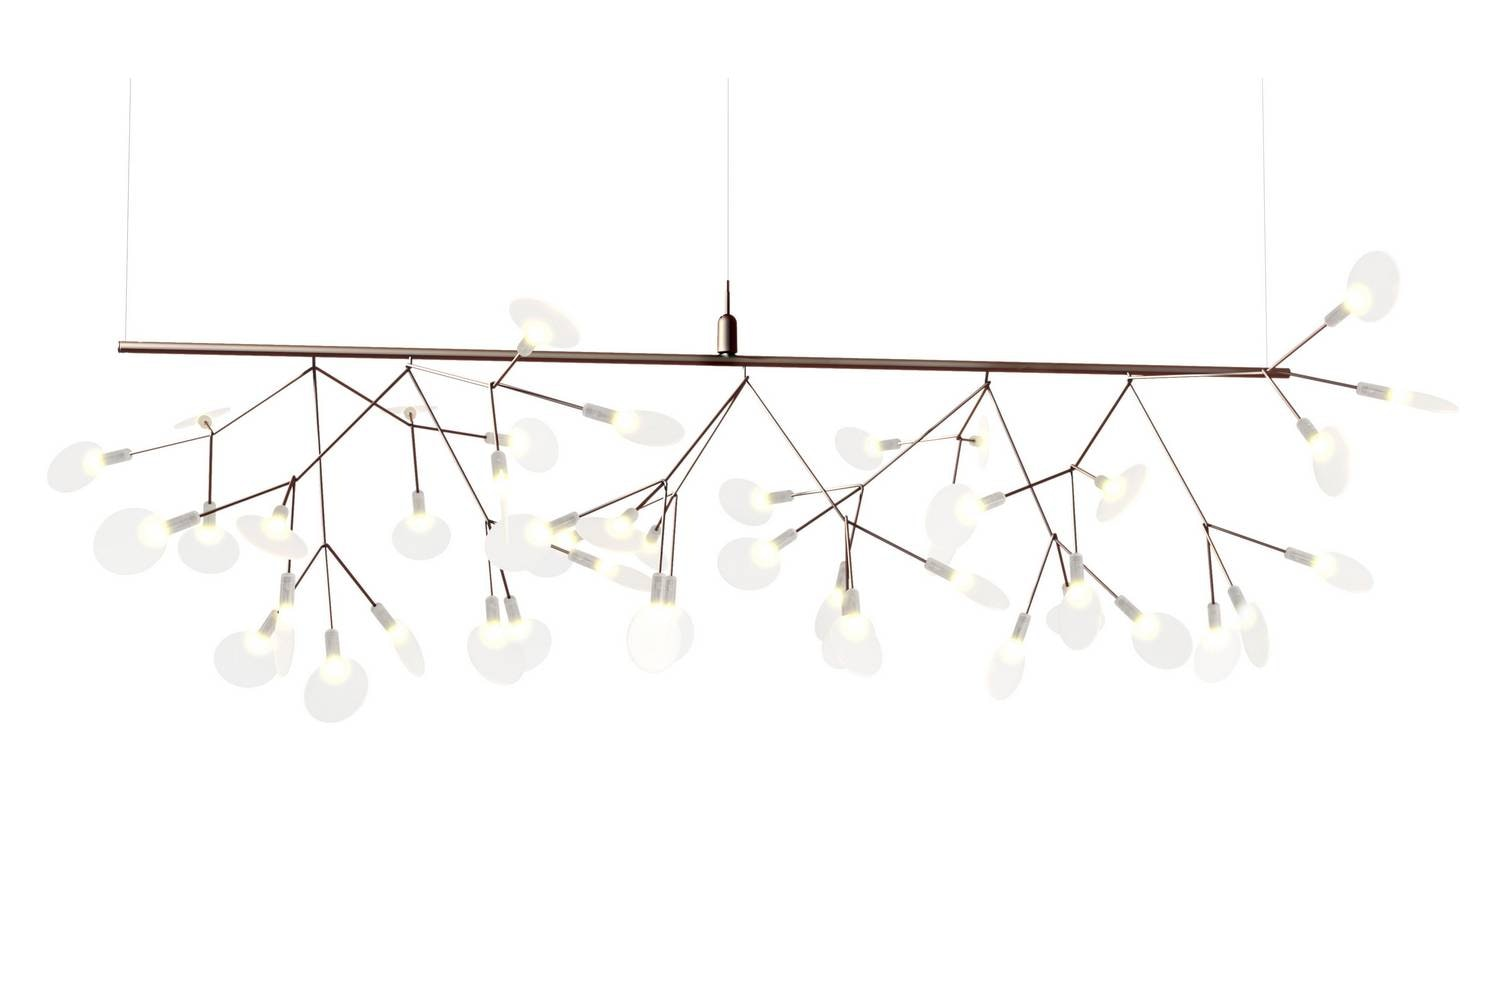 Heracleum Endless Suspension Lamp by Bertjan Pot for Moooi